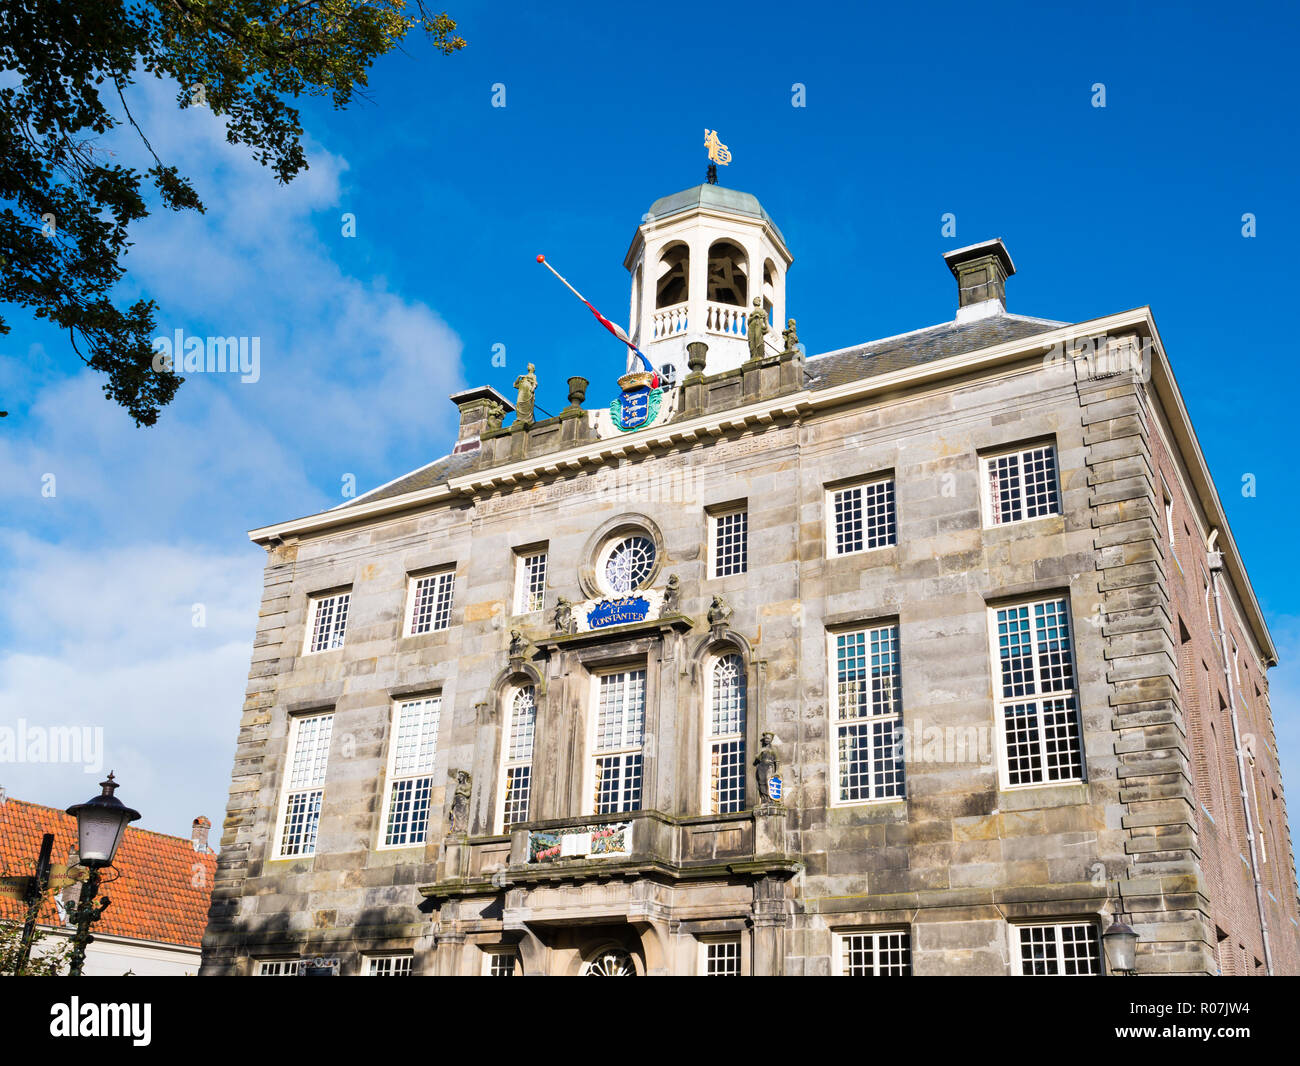 Front facade of historic town hall in city centre of Enkhuizen, Noord-Holland, Netherlands - Stock Image